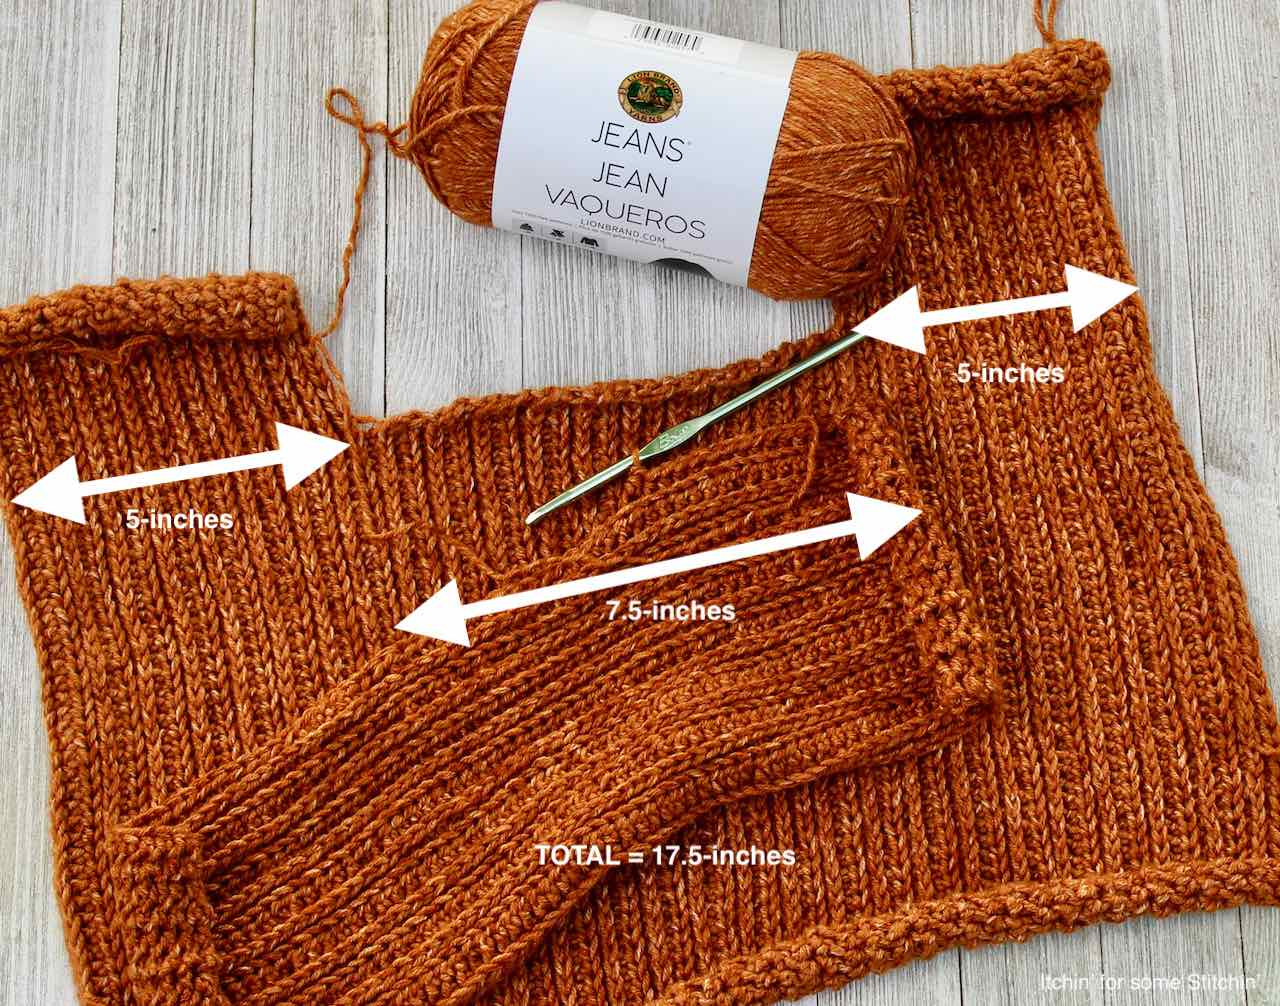 Assembling the Easy Crochet Knit look Sweater by www.itchinforsomestitchin.com